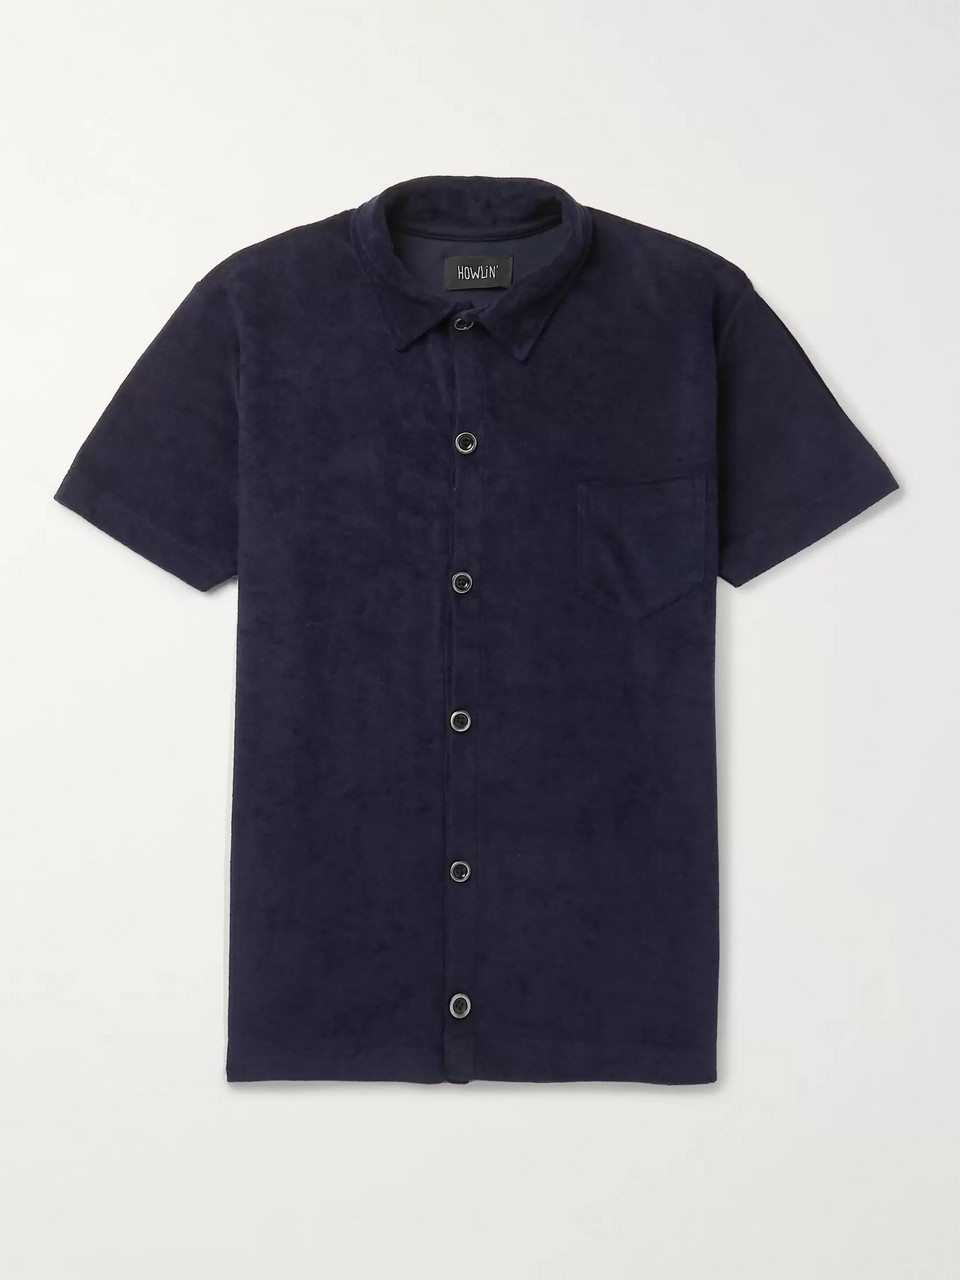 Howlin' Slim-Fit Cotton-Blend Terry Shirt